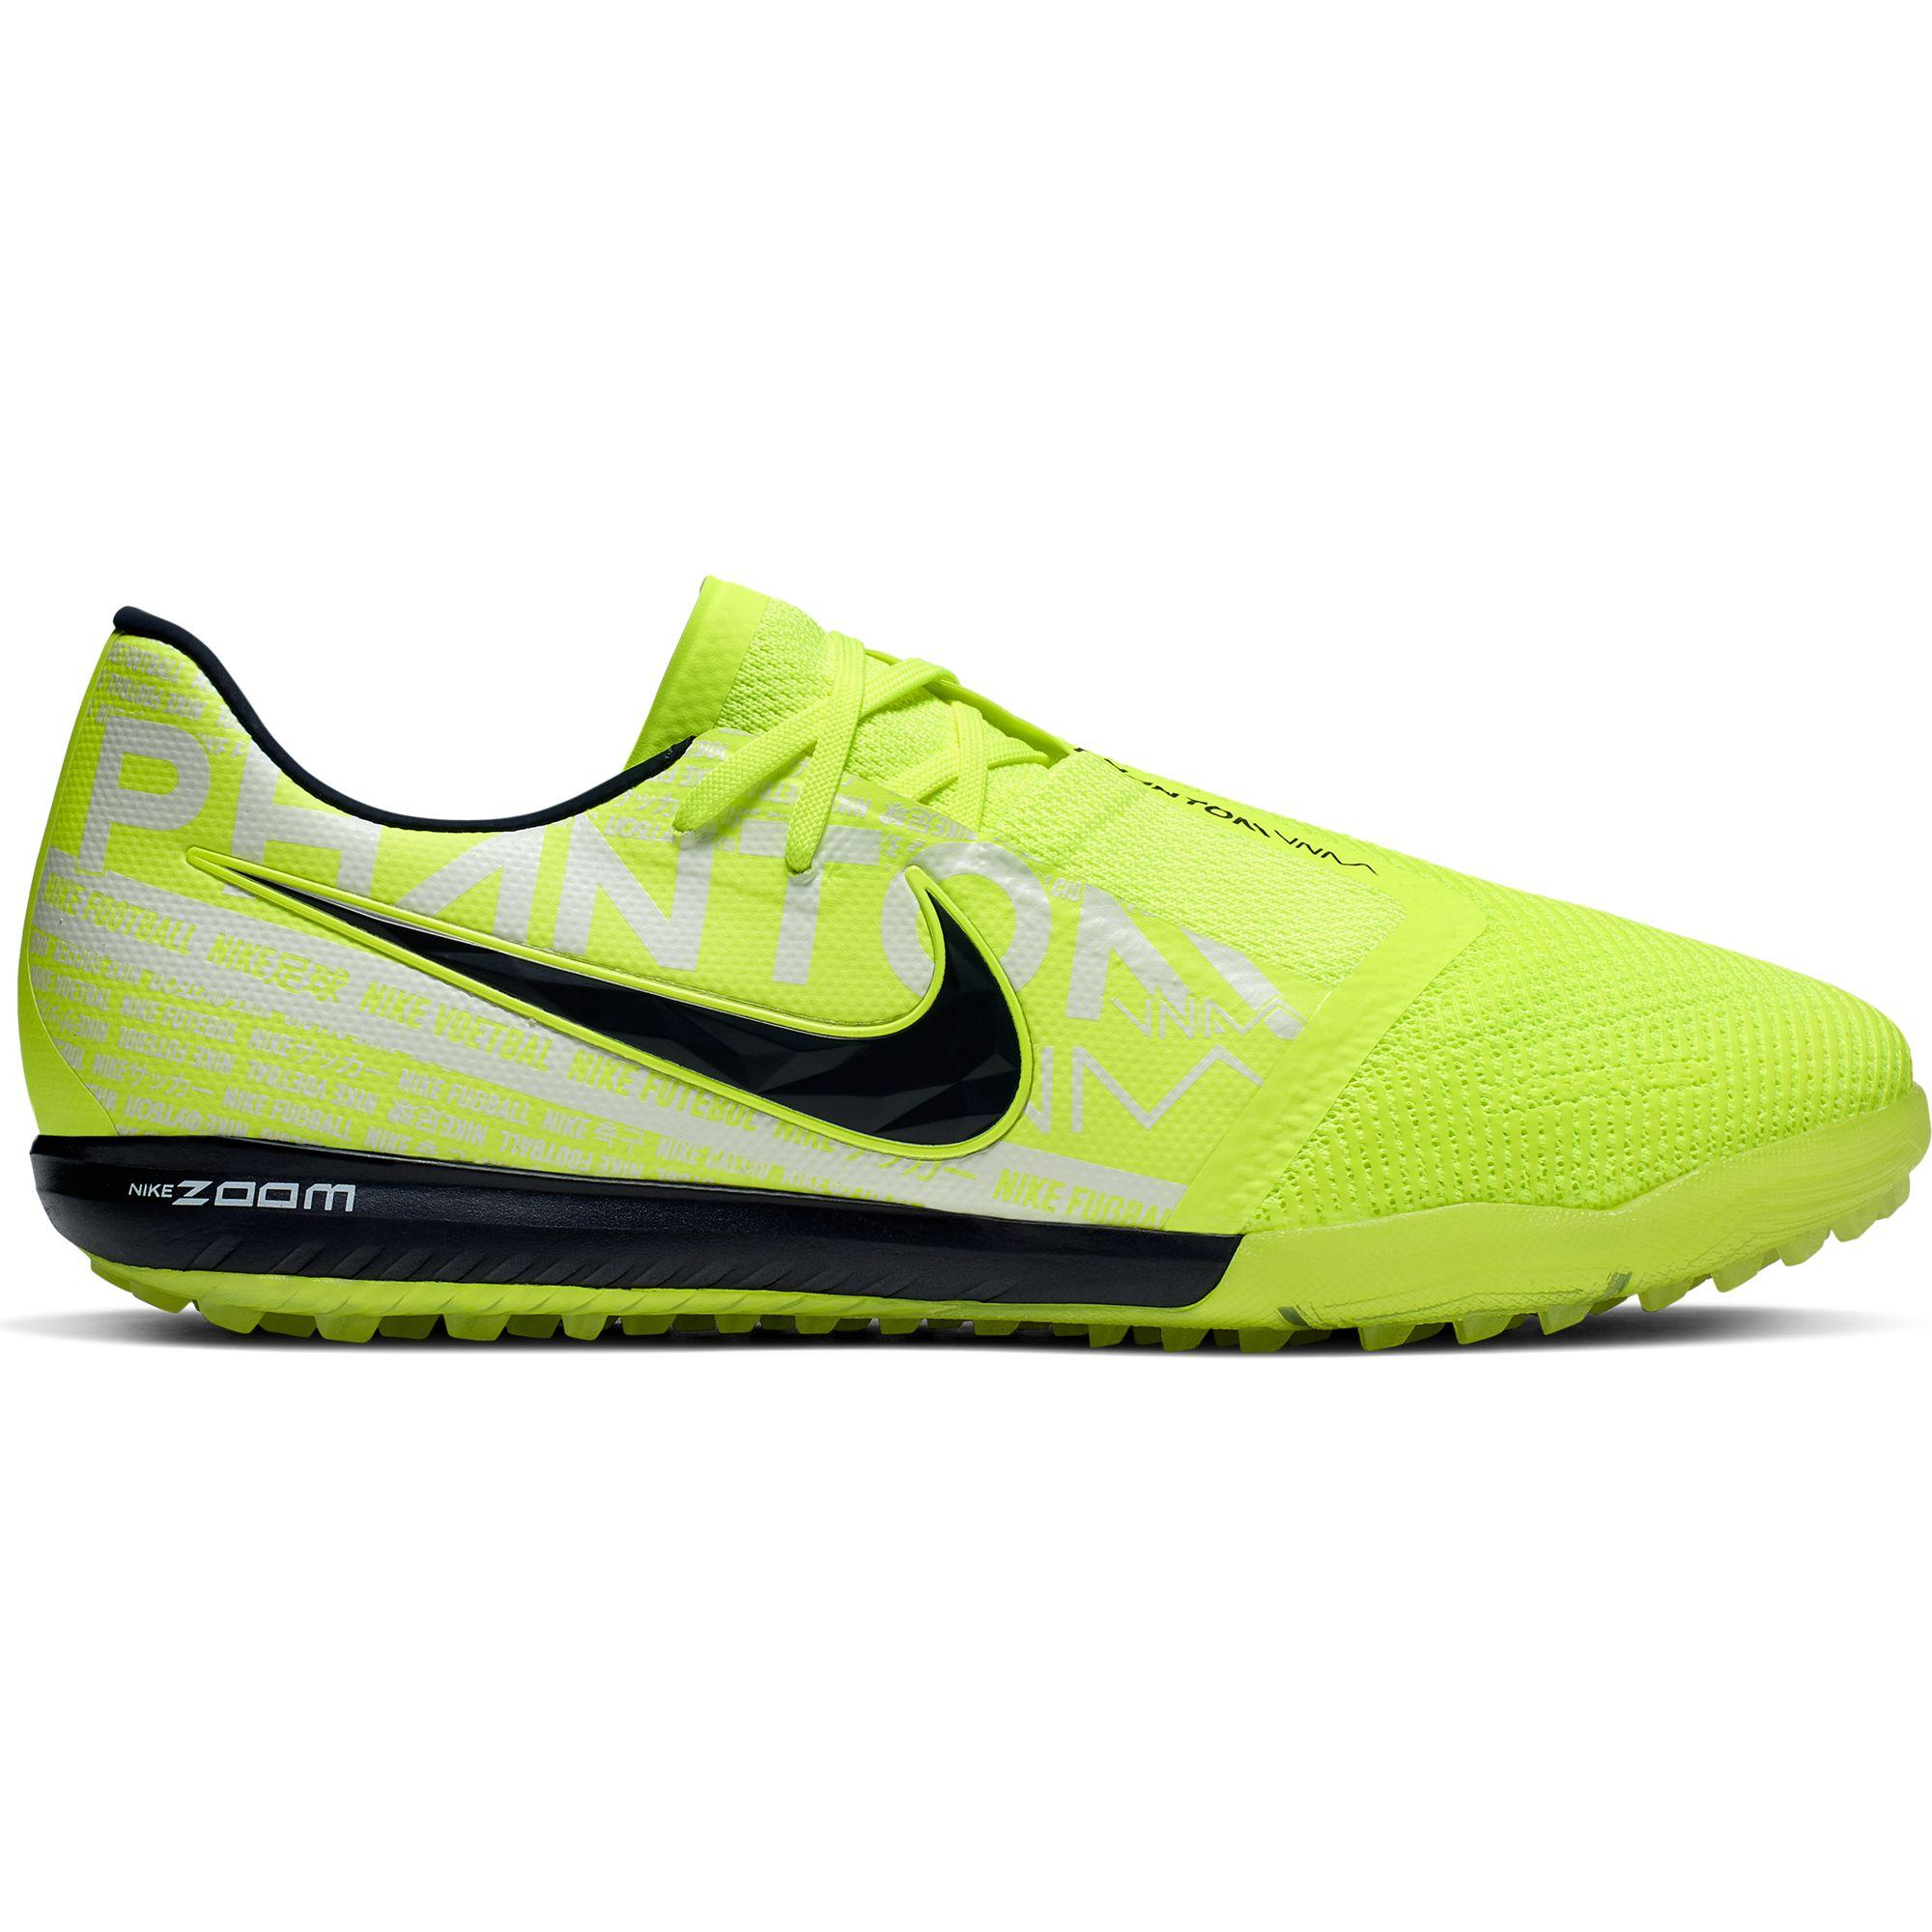 buy online 28eed 6aa38 Nike Futsal shoes Zoom Phantom Venom Pro TF